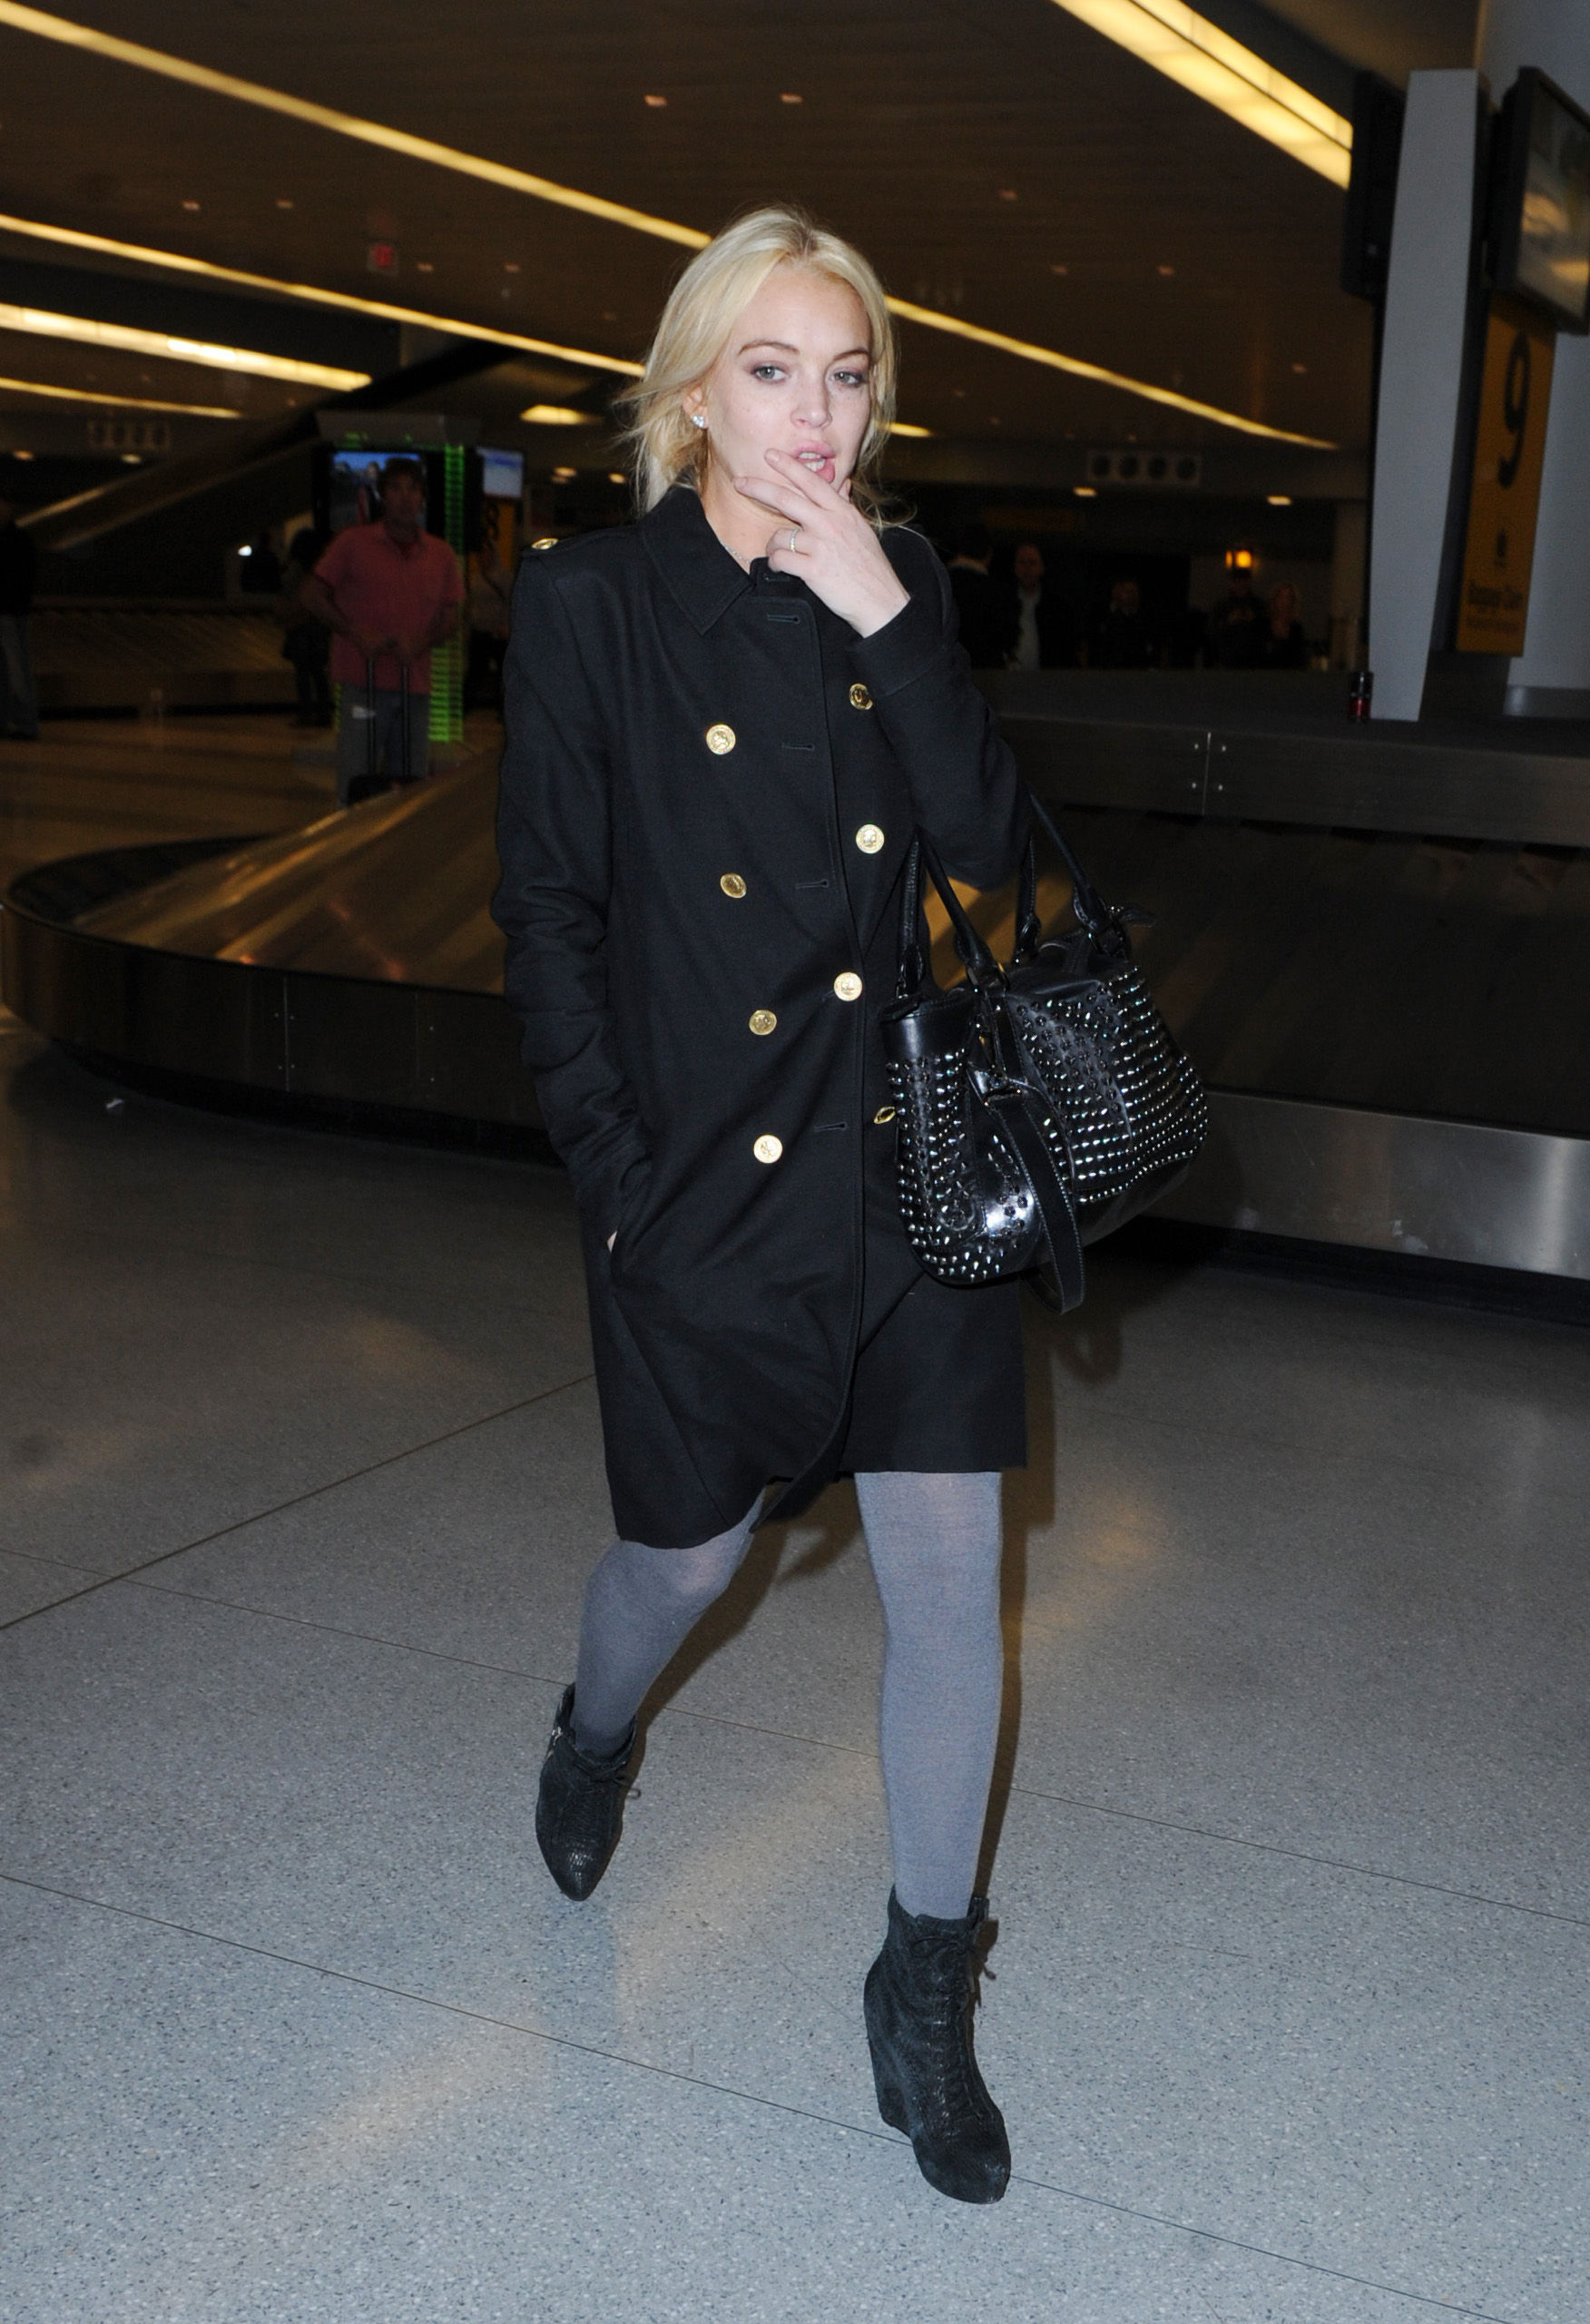 2011 03 13 arrives at jfk airport lindsay lohan 20154998 1752 2560 Nude Rare Celebrities only at Mr Skin